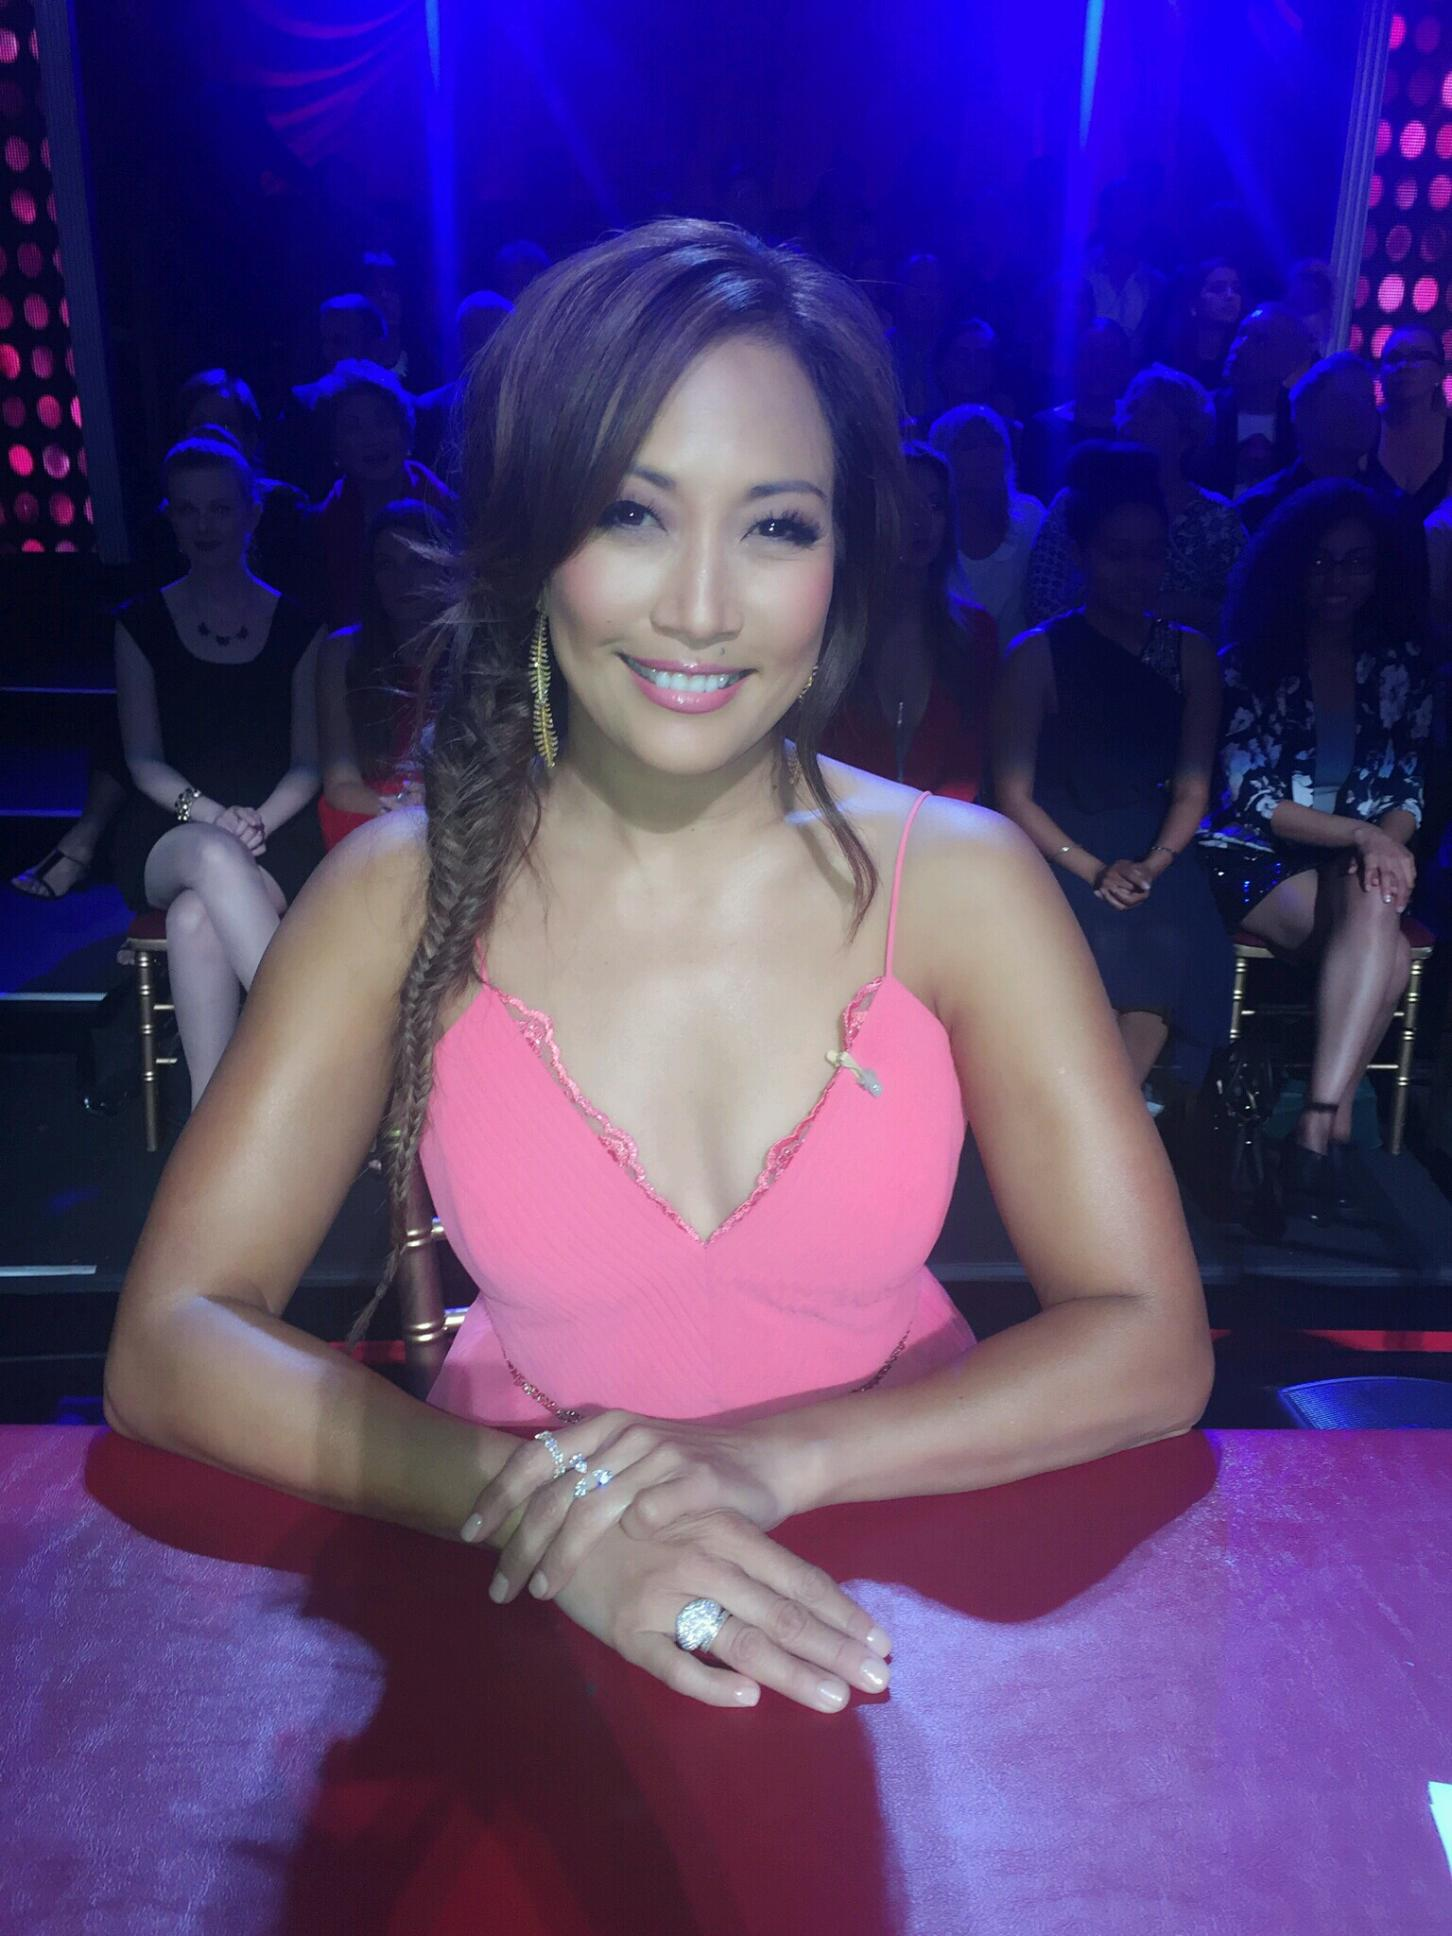 Carrie-Ann-Inabas-Dancing-With-The-Stars-Season-22-Blog-Week-2